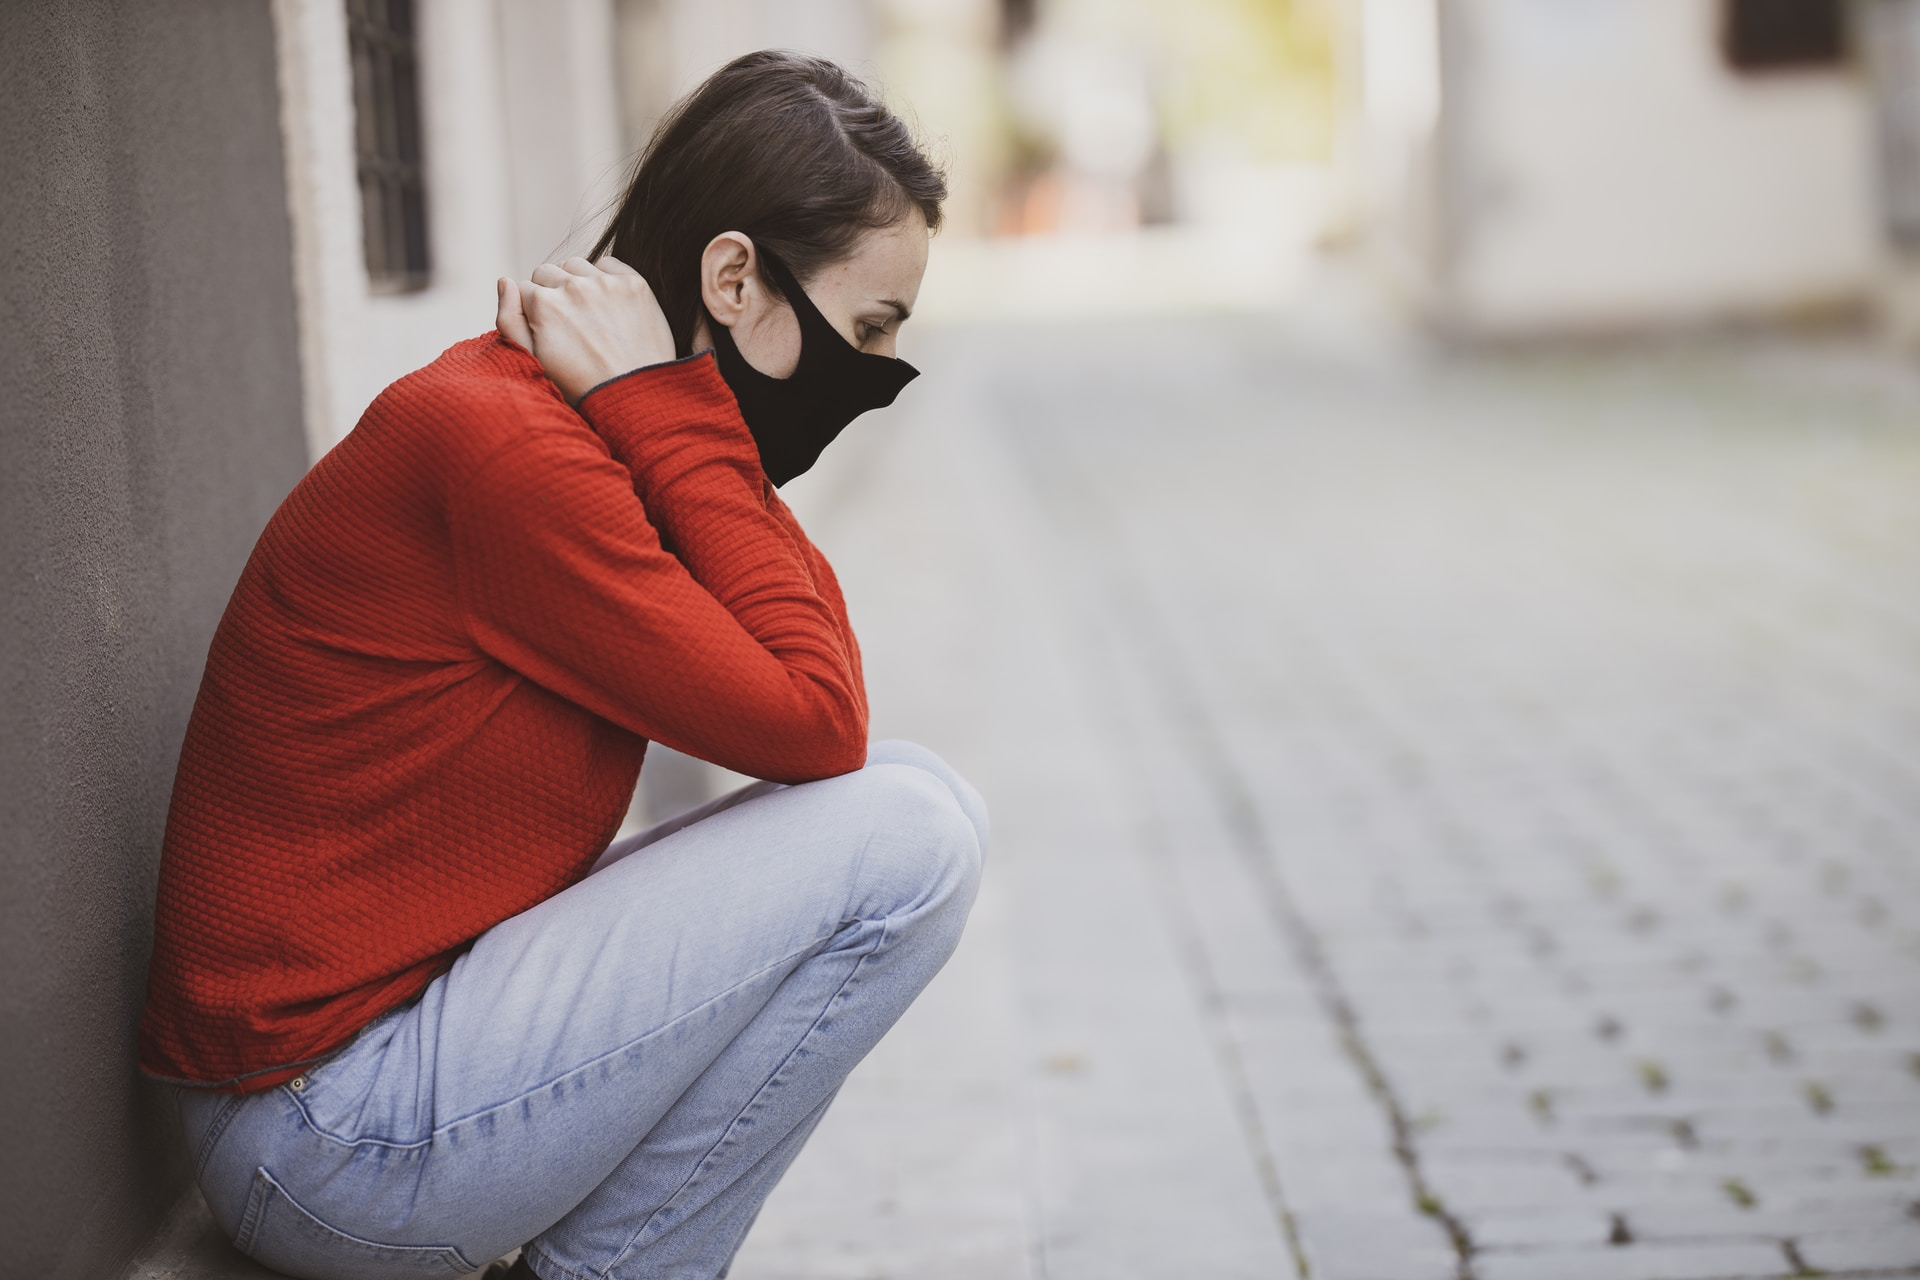 woman in red sweater and blue denim jeans sitting on concrete pavement